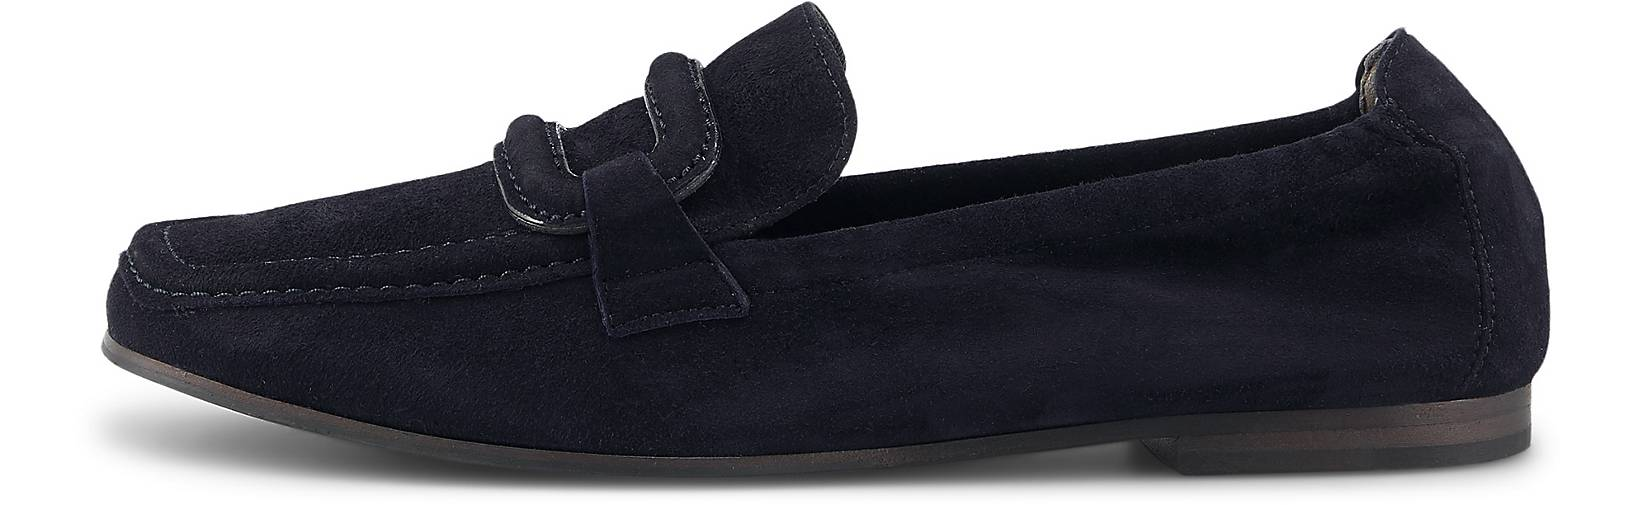 Kennel & Schmenger Fashion-Slipper NINA